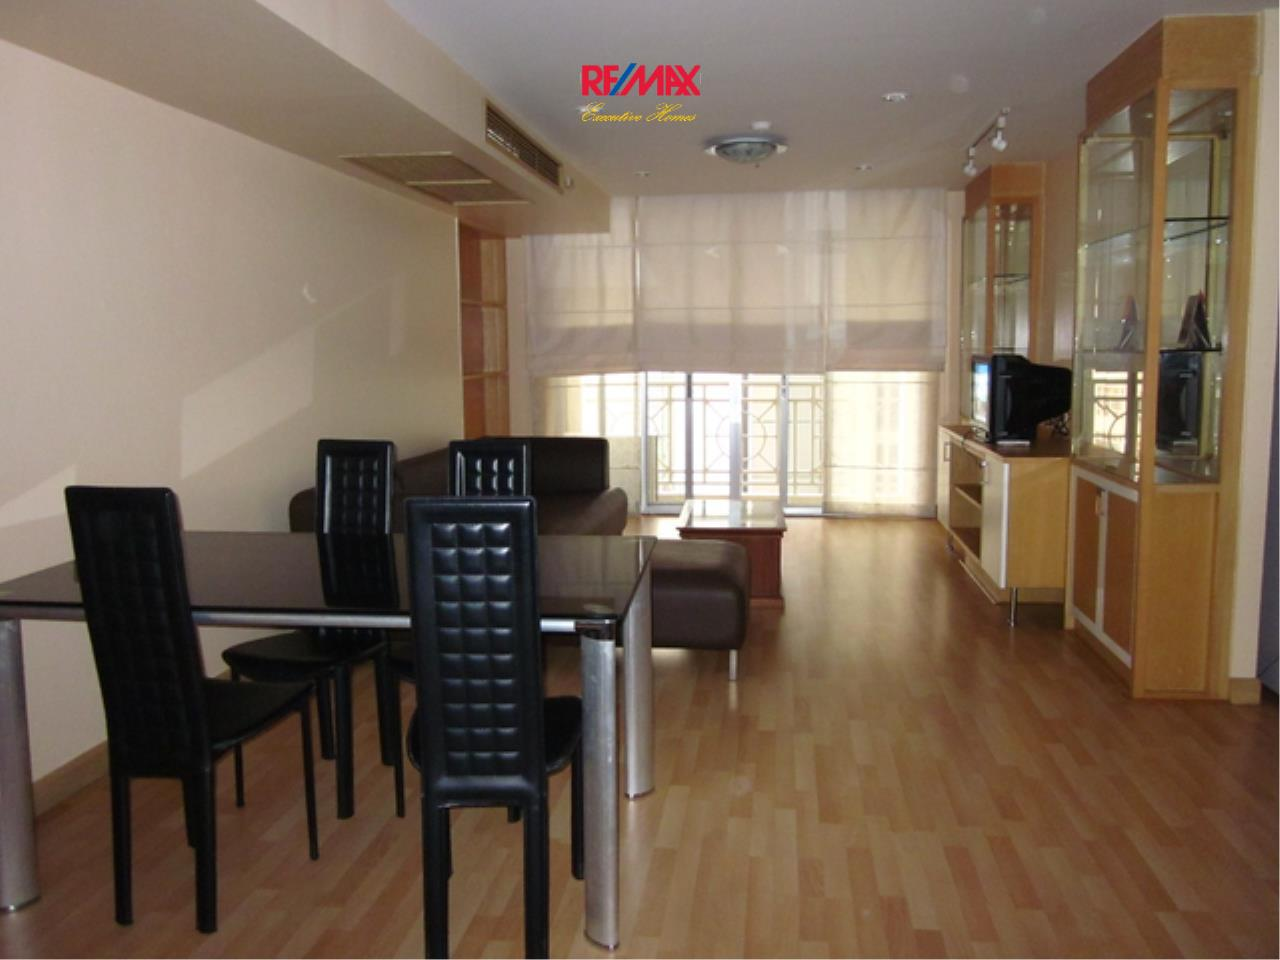 RE/MAX Executive Homes Agency's Spacious 1 Bedroom for Rent and Sale Asoke Place 2